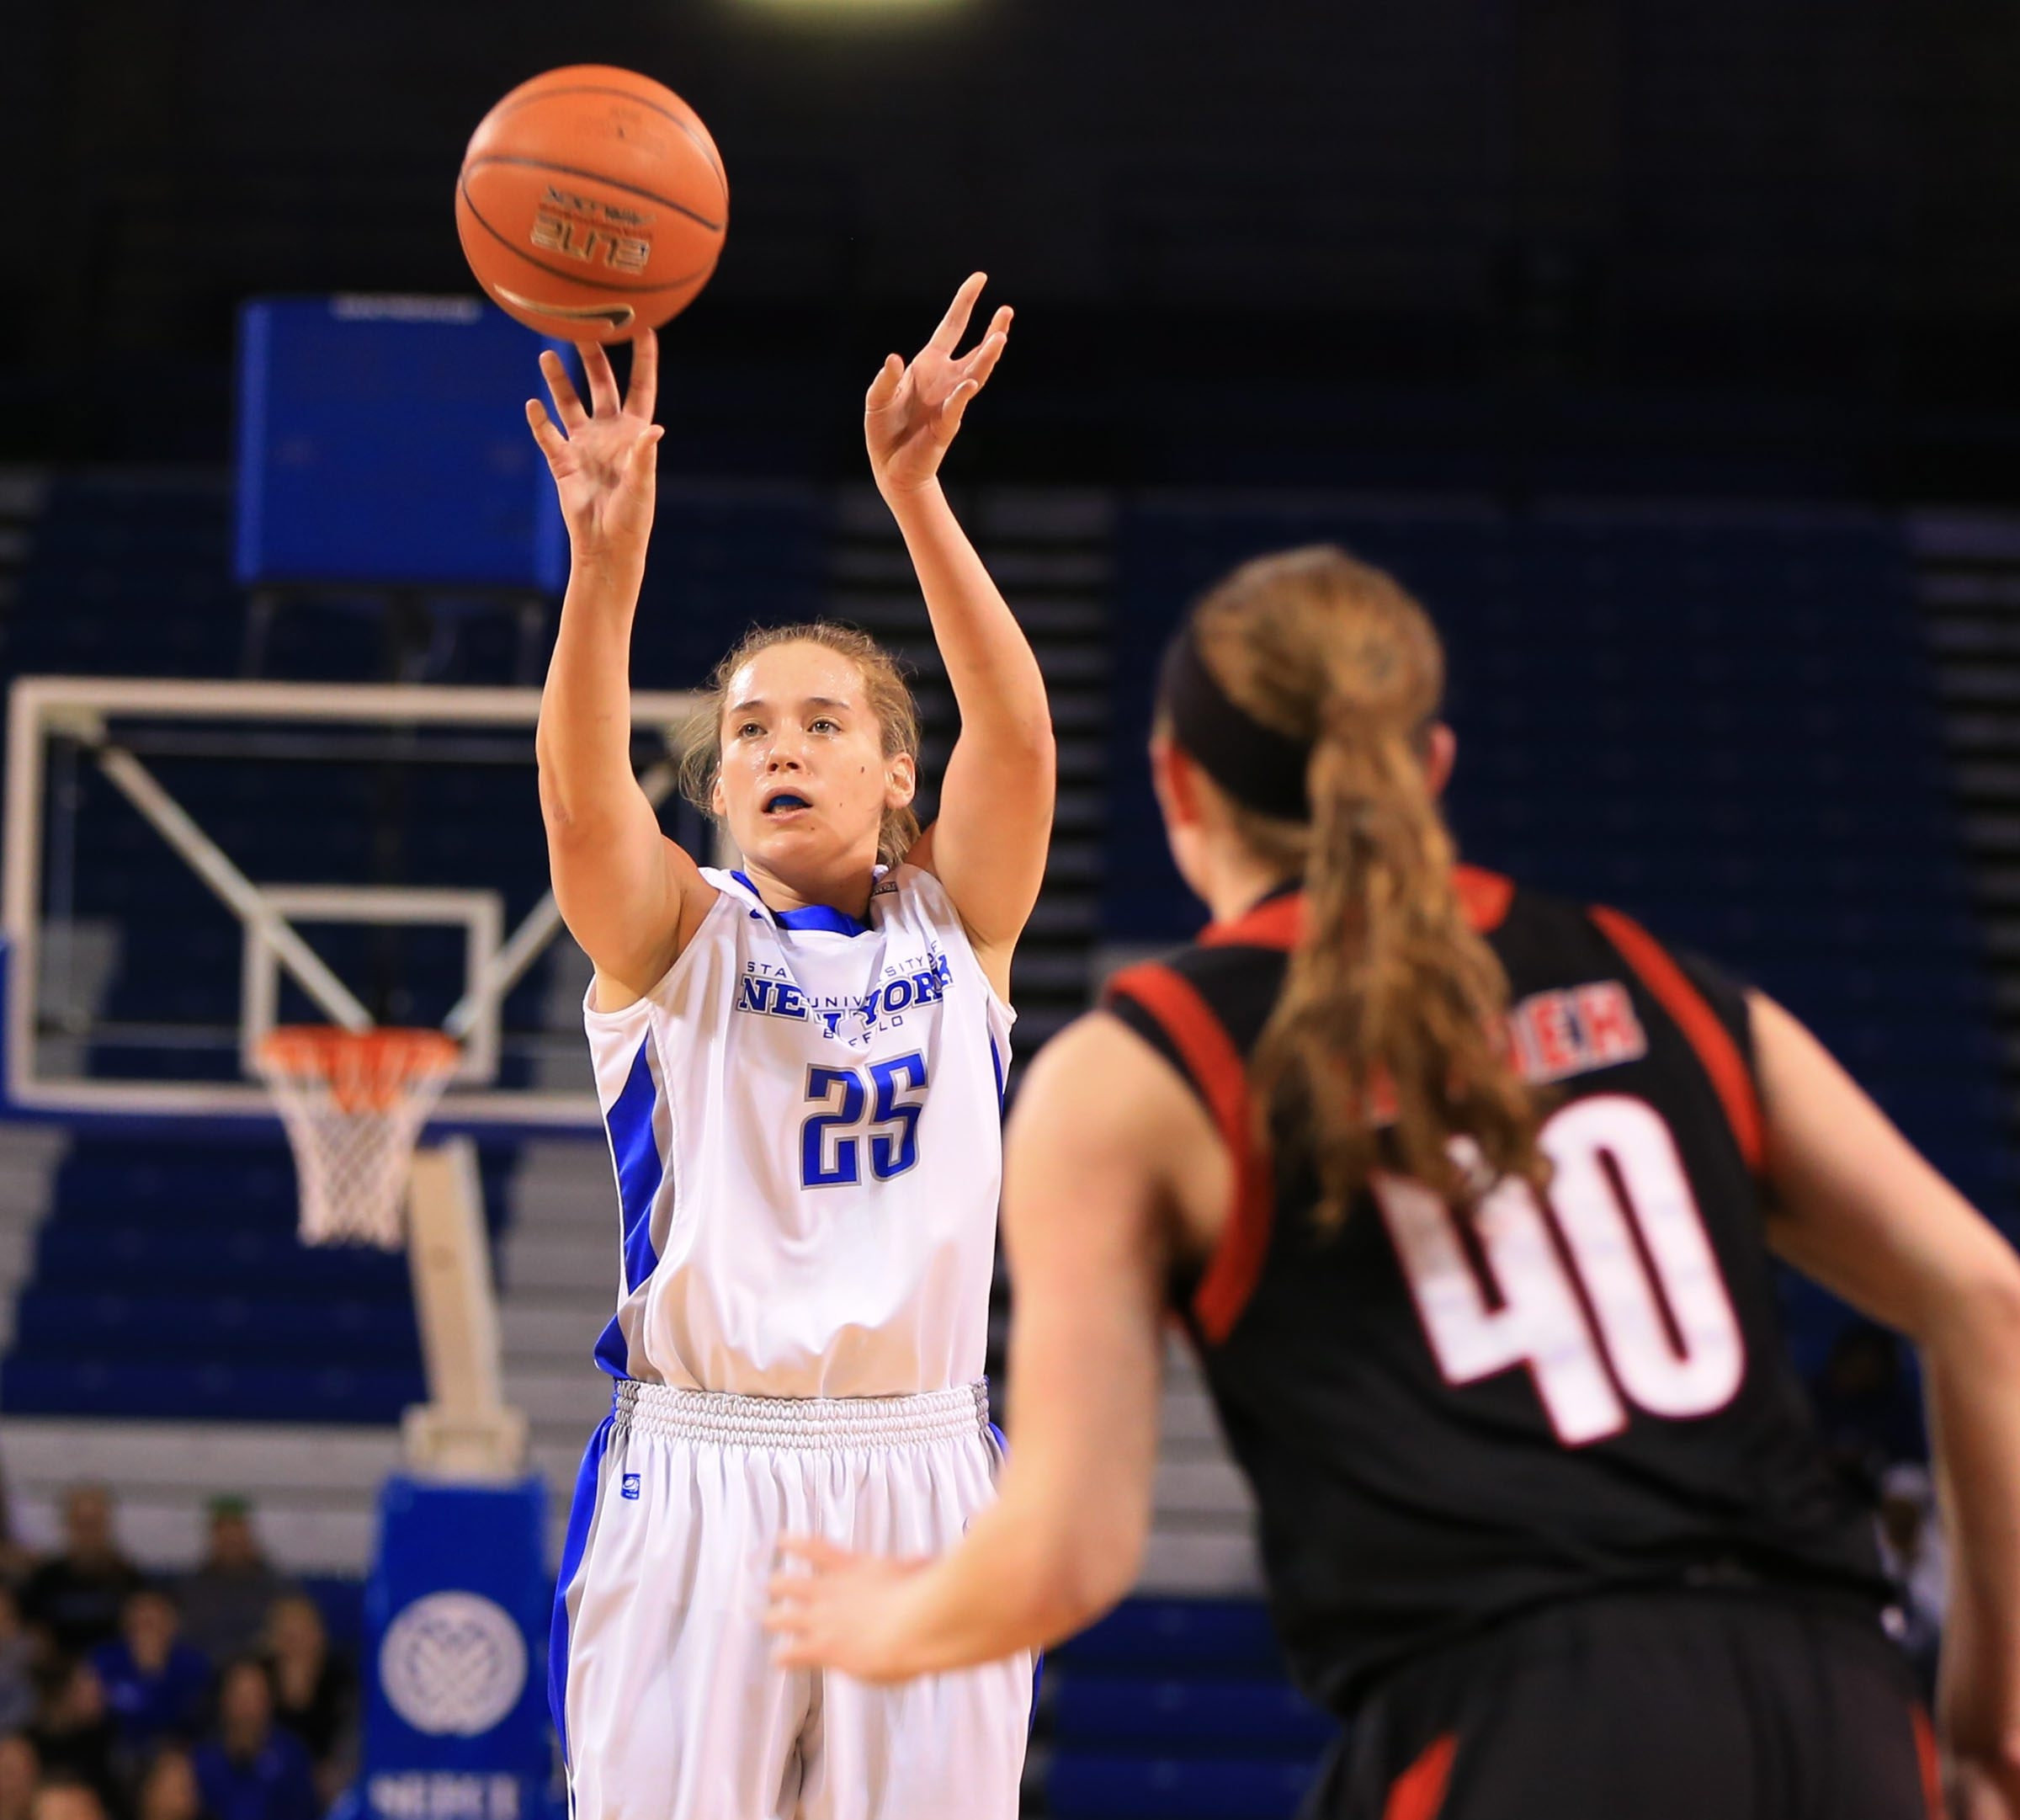 Kristen Sharkey (25) provided the offensive spark Saturday afternoon as the University at Buffalo shook off a sluggish first half to defeat Northern Illinois at Alumni Arena.